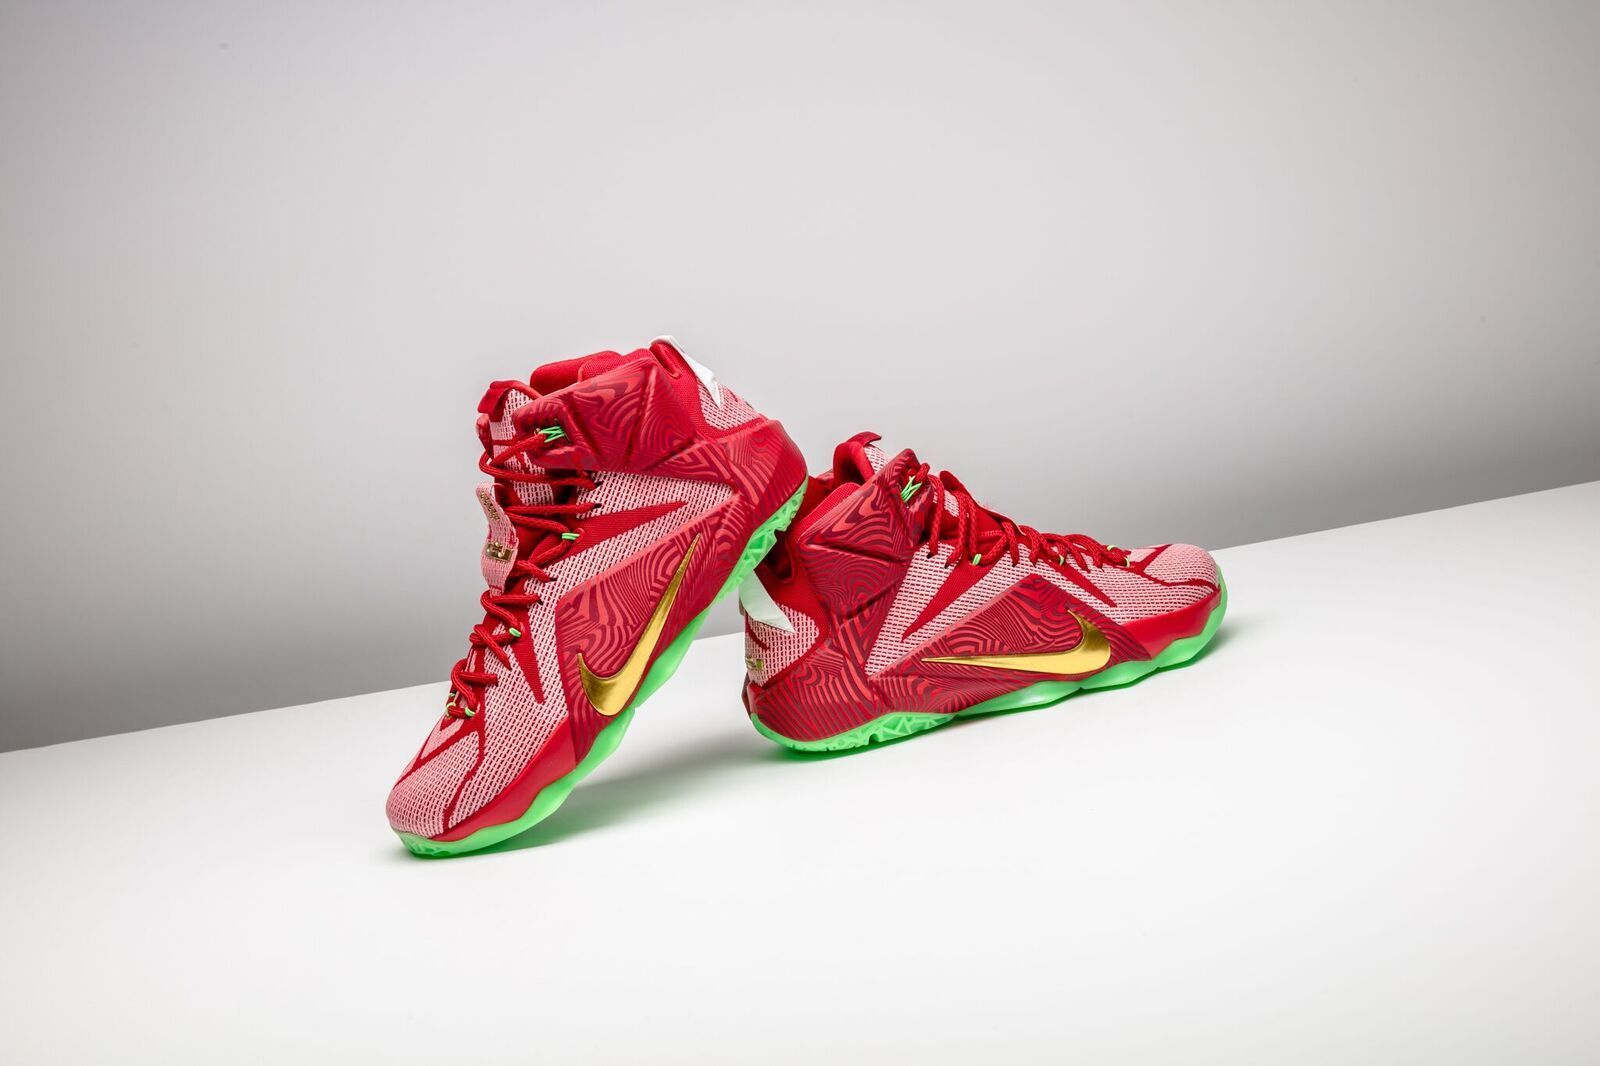 new product 2aee6 e05dc Nike Lebrons Mix Pack